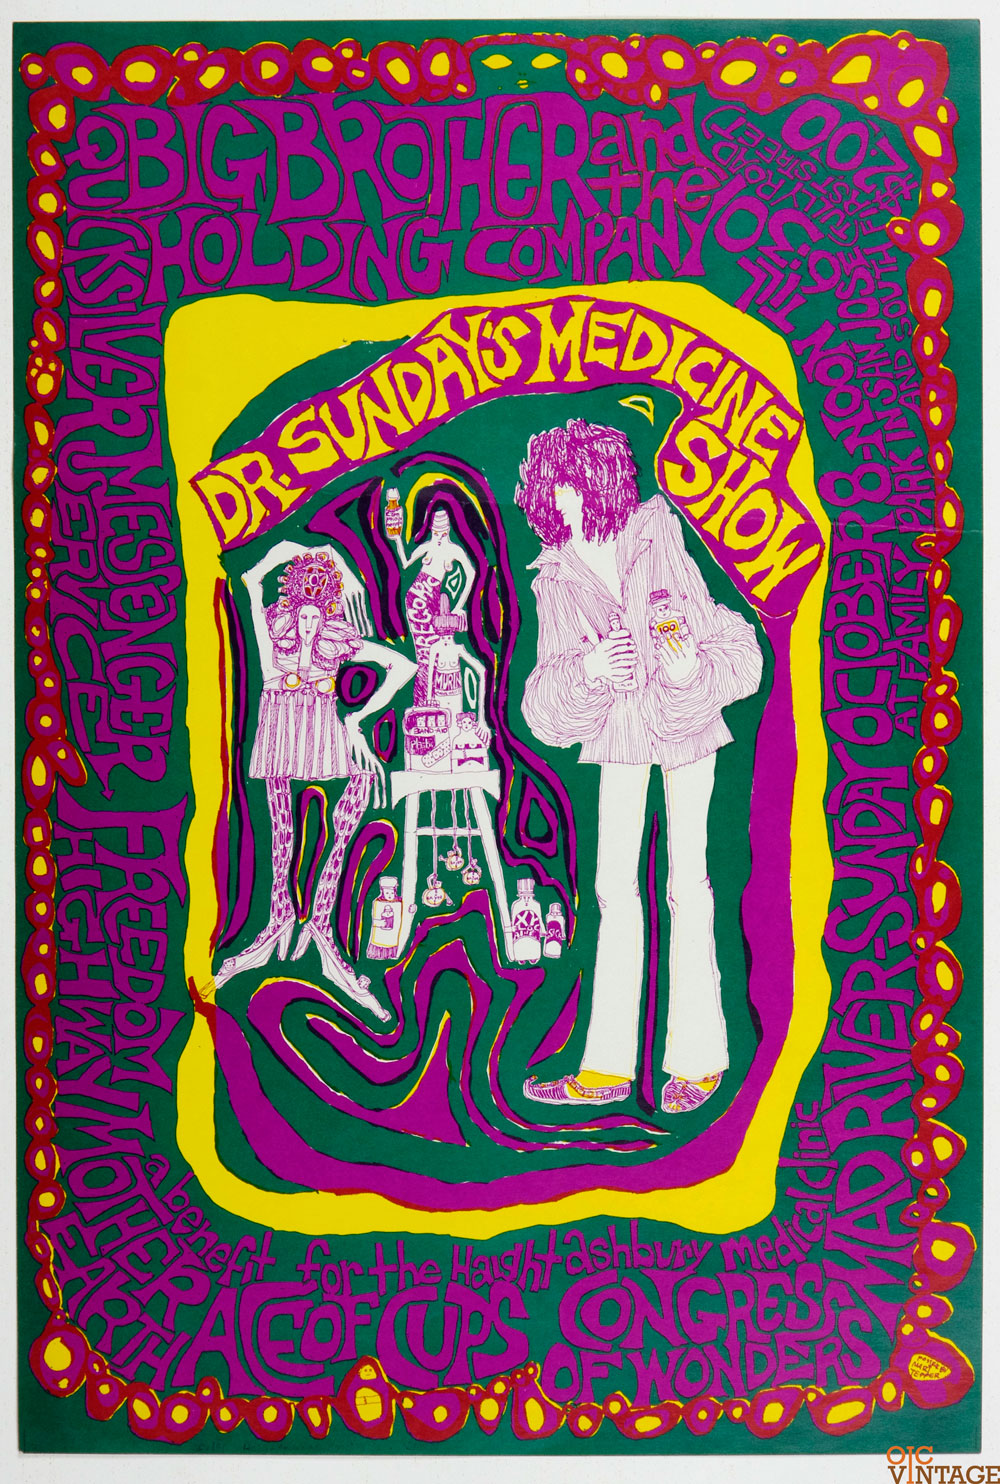 A Benefit for Height and Ashbury Medical Clinic Poster Mari Tepper 1967 Oct 8